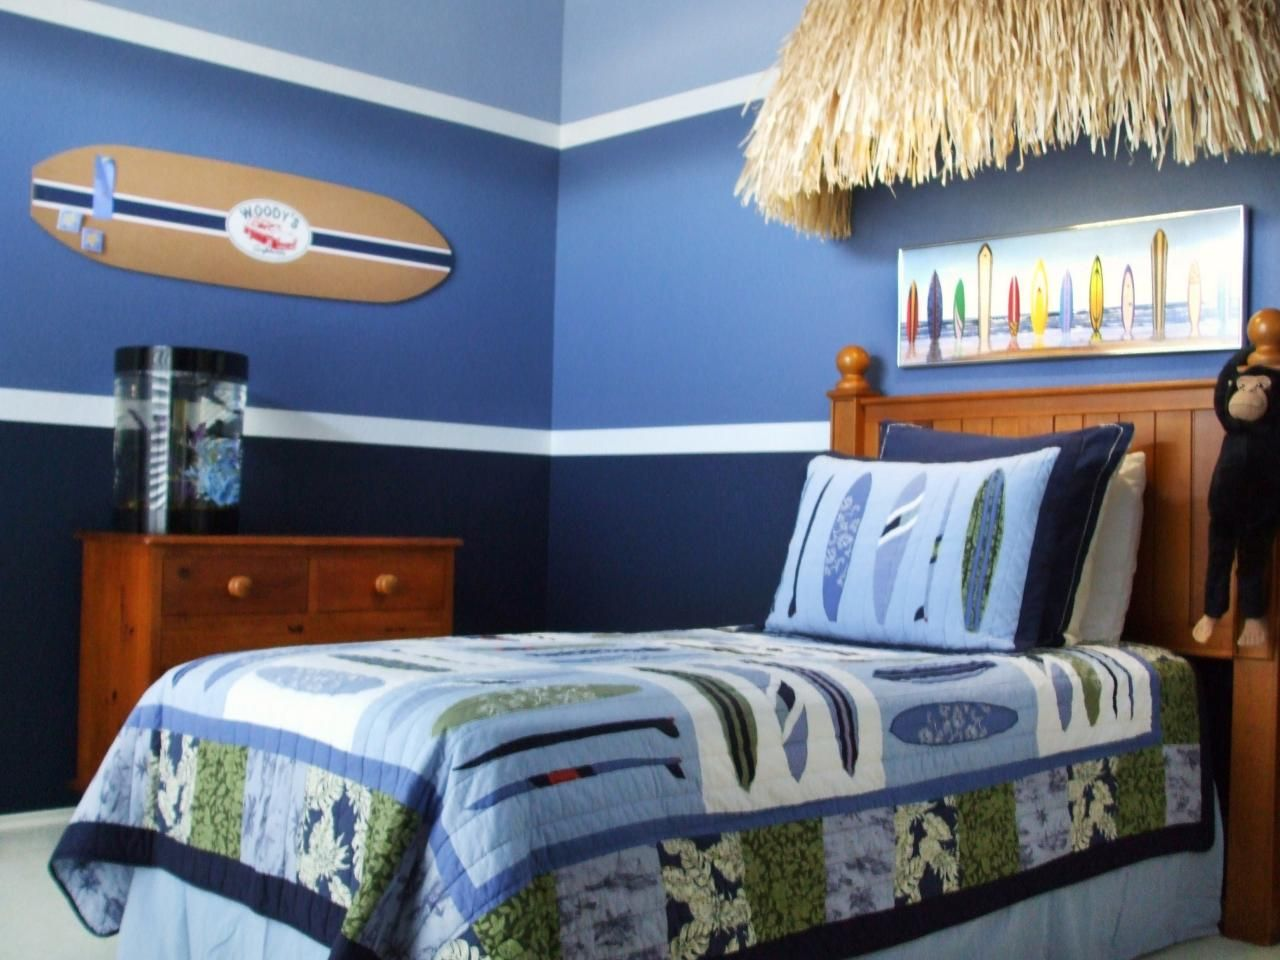 Beach Decor Ideas For Home Interior Design Styles And Color Schemes Decorating Hgtv